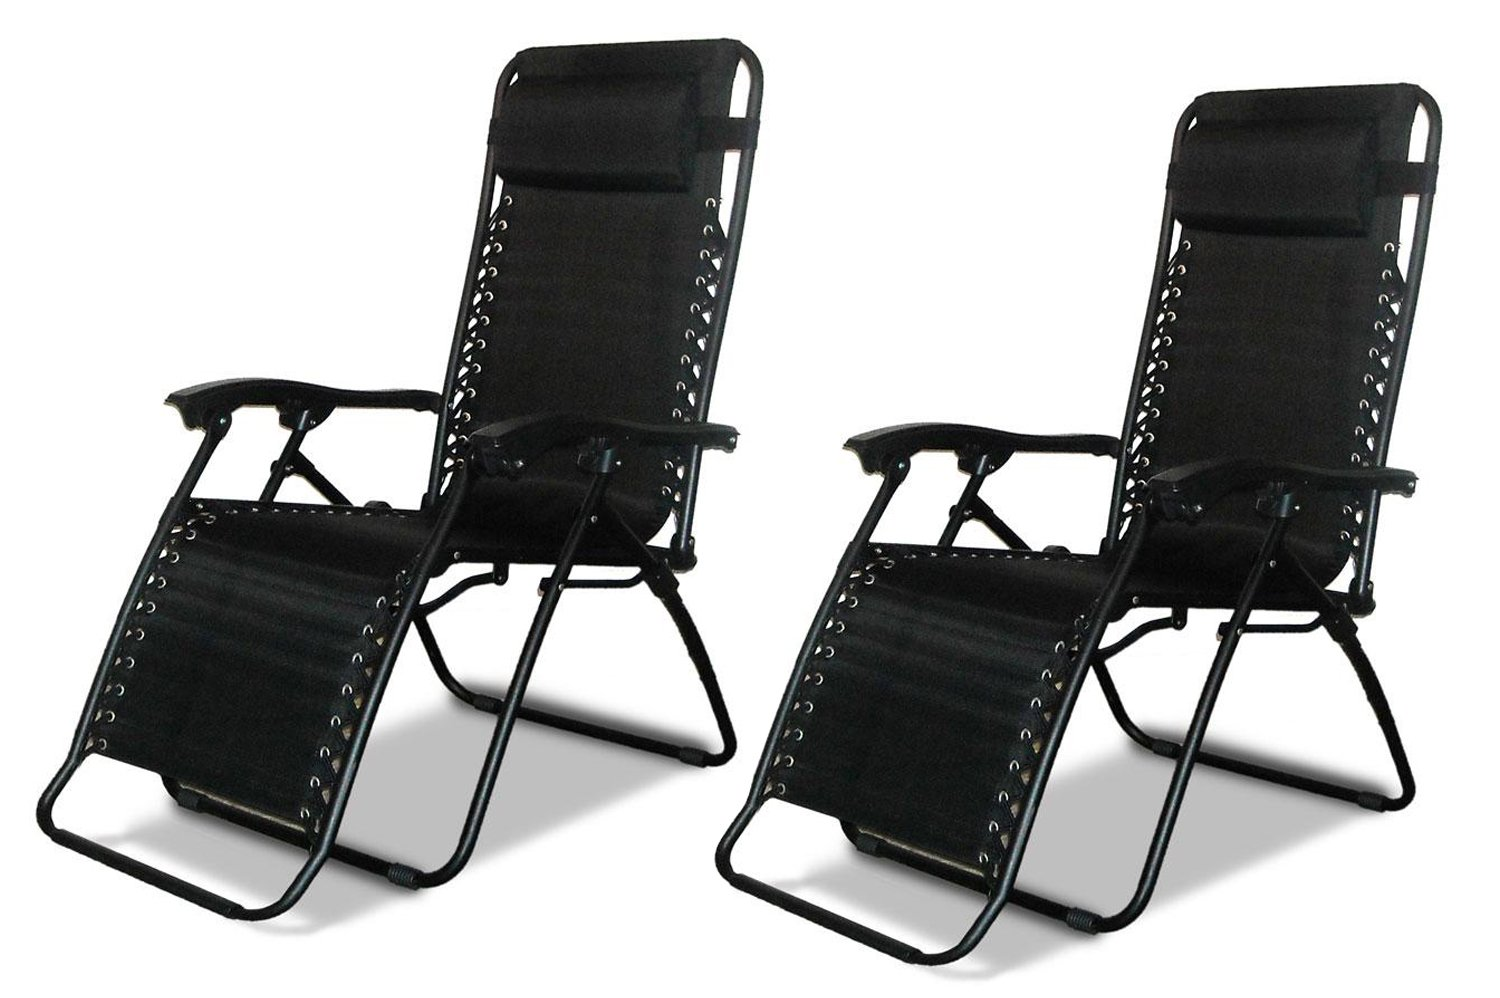 2 X DNY Textoline Reclining Garden Chair Beach Sun Lounger Recliner Chairs